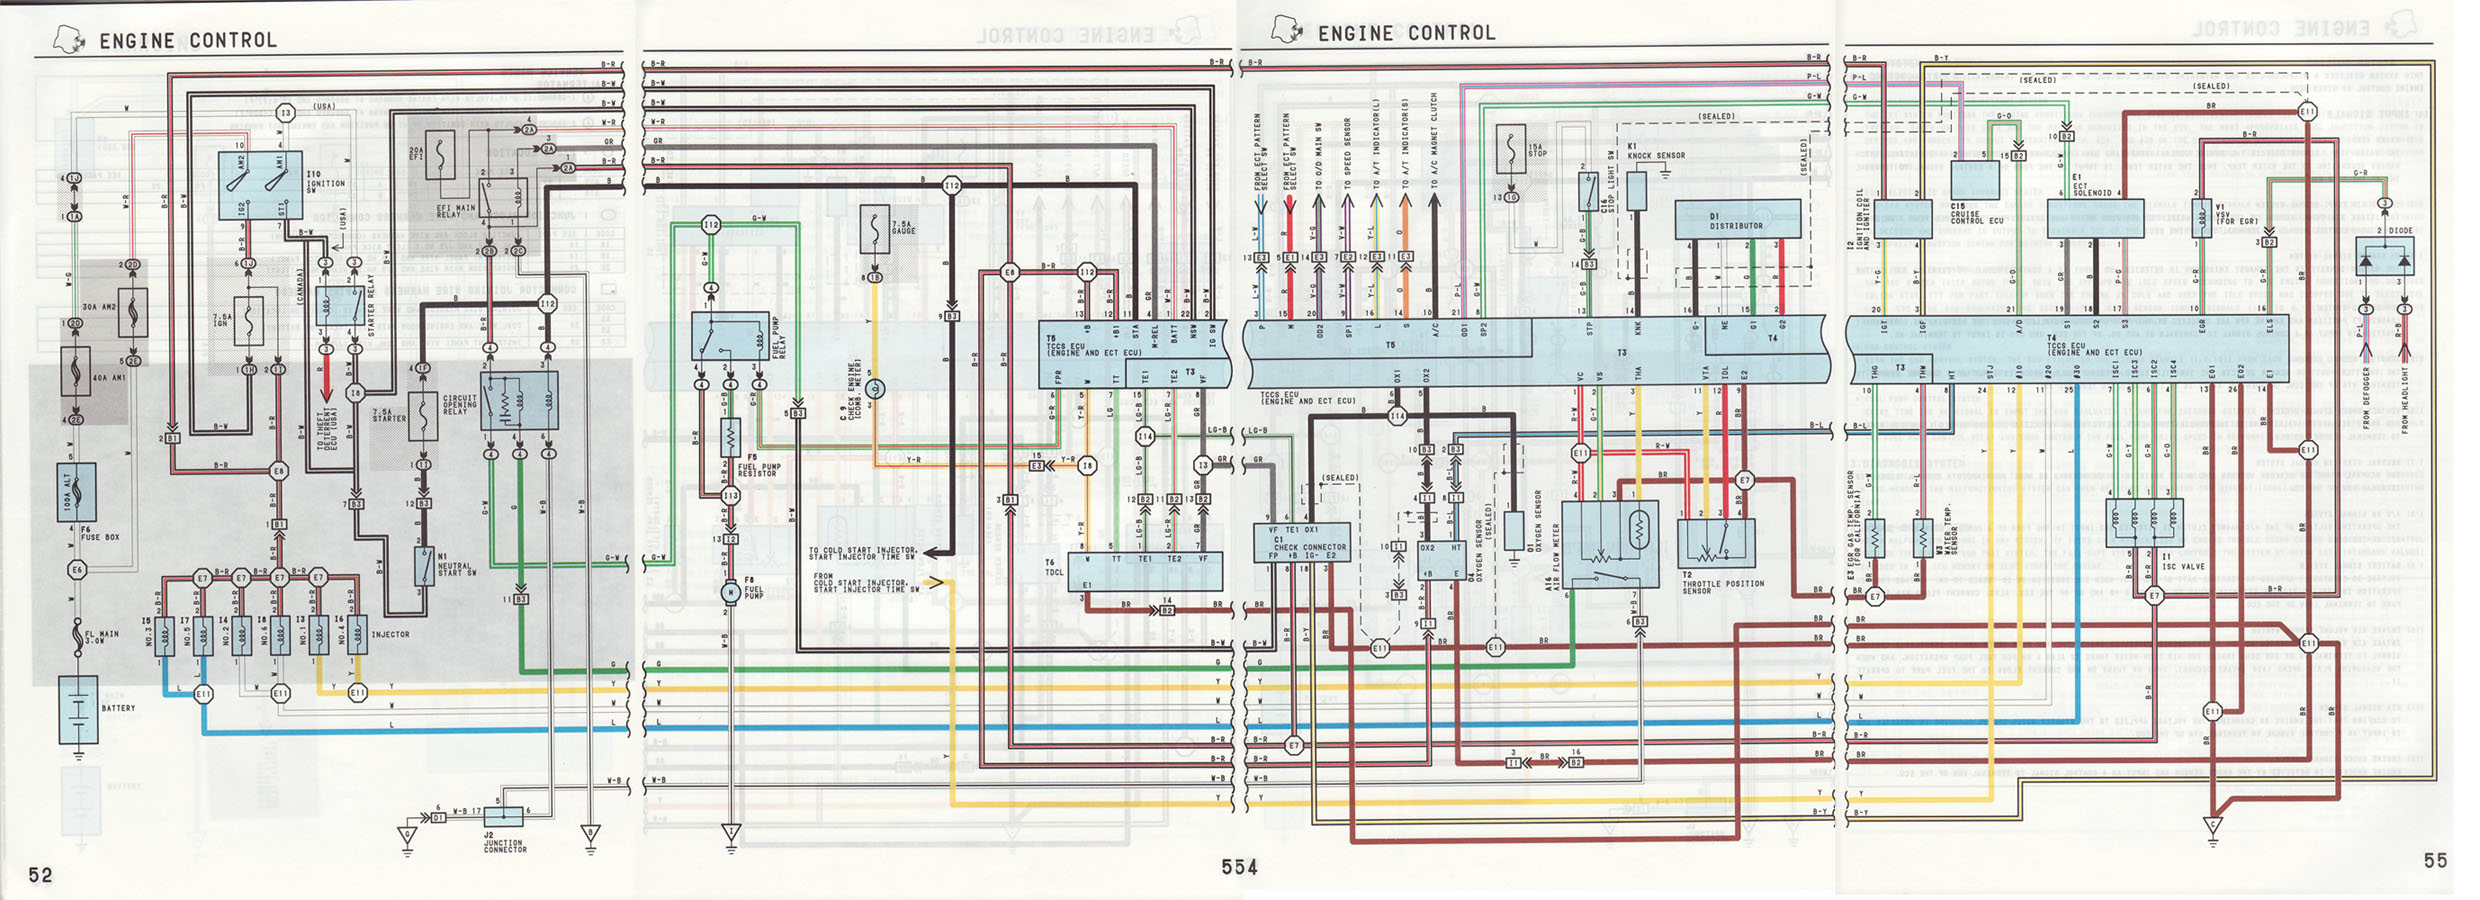 mx83engine 7mgte wiring harness diagram sr20 wiring diagram \u2022 wiring diagrams mk3 supra 1jz wiring harness at reclaimingppi.co